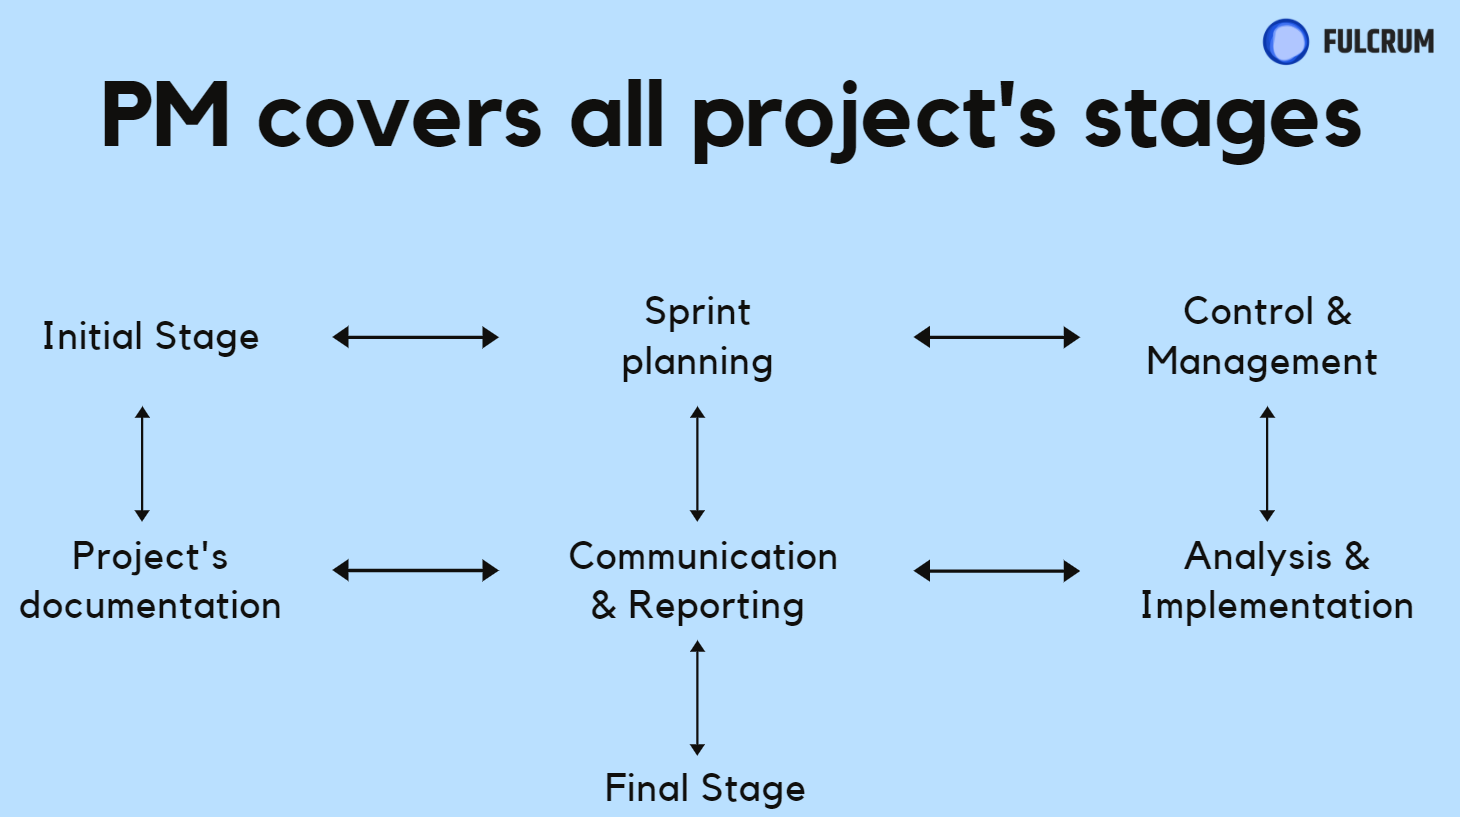 PMaaS Project stages.